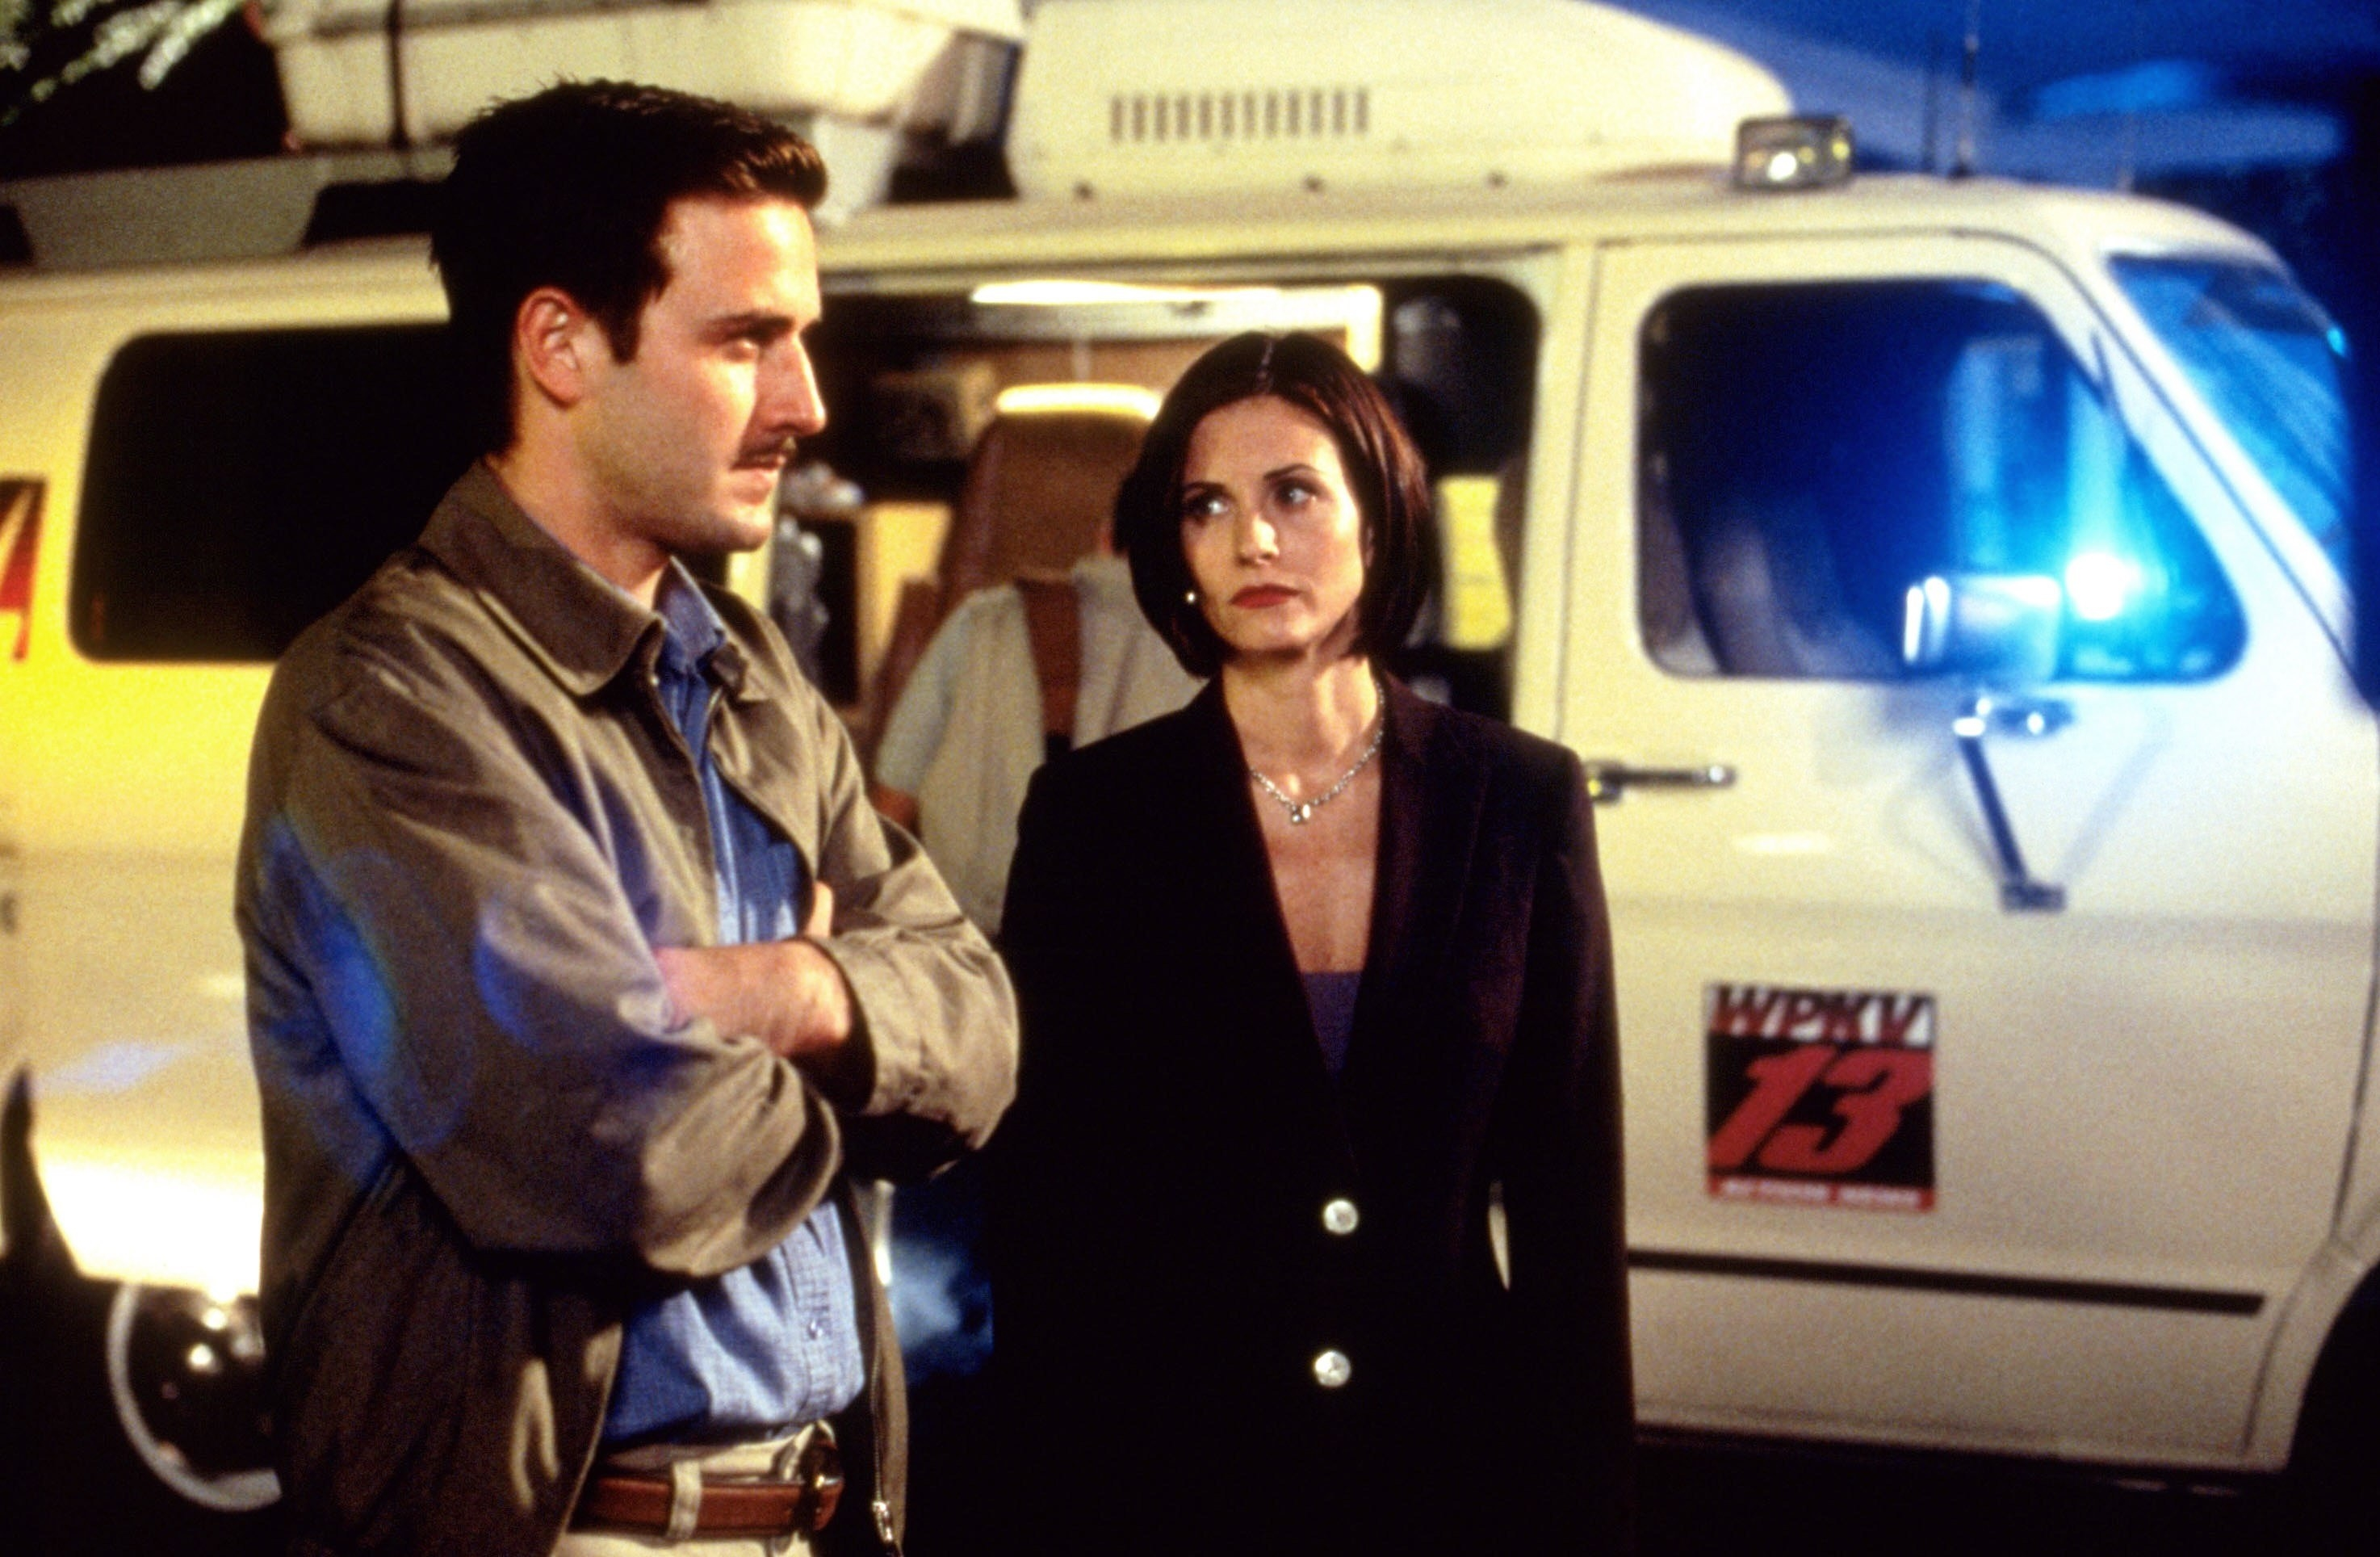 David Arquette andCourteney Cox stand in front of a news van